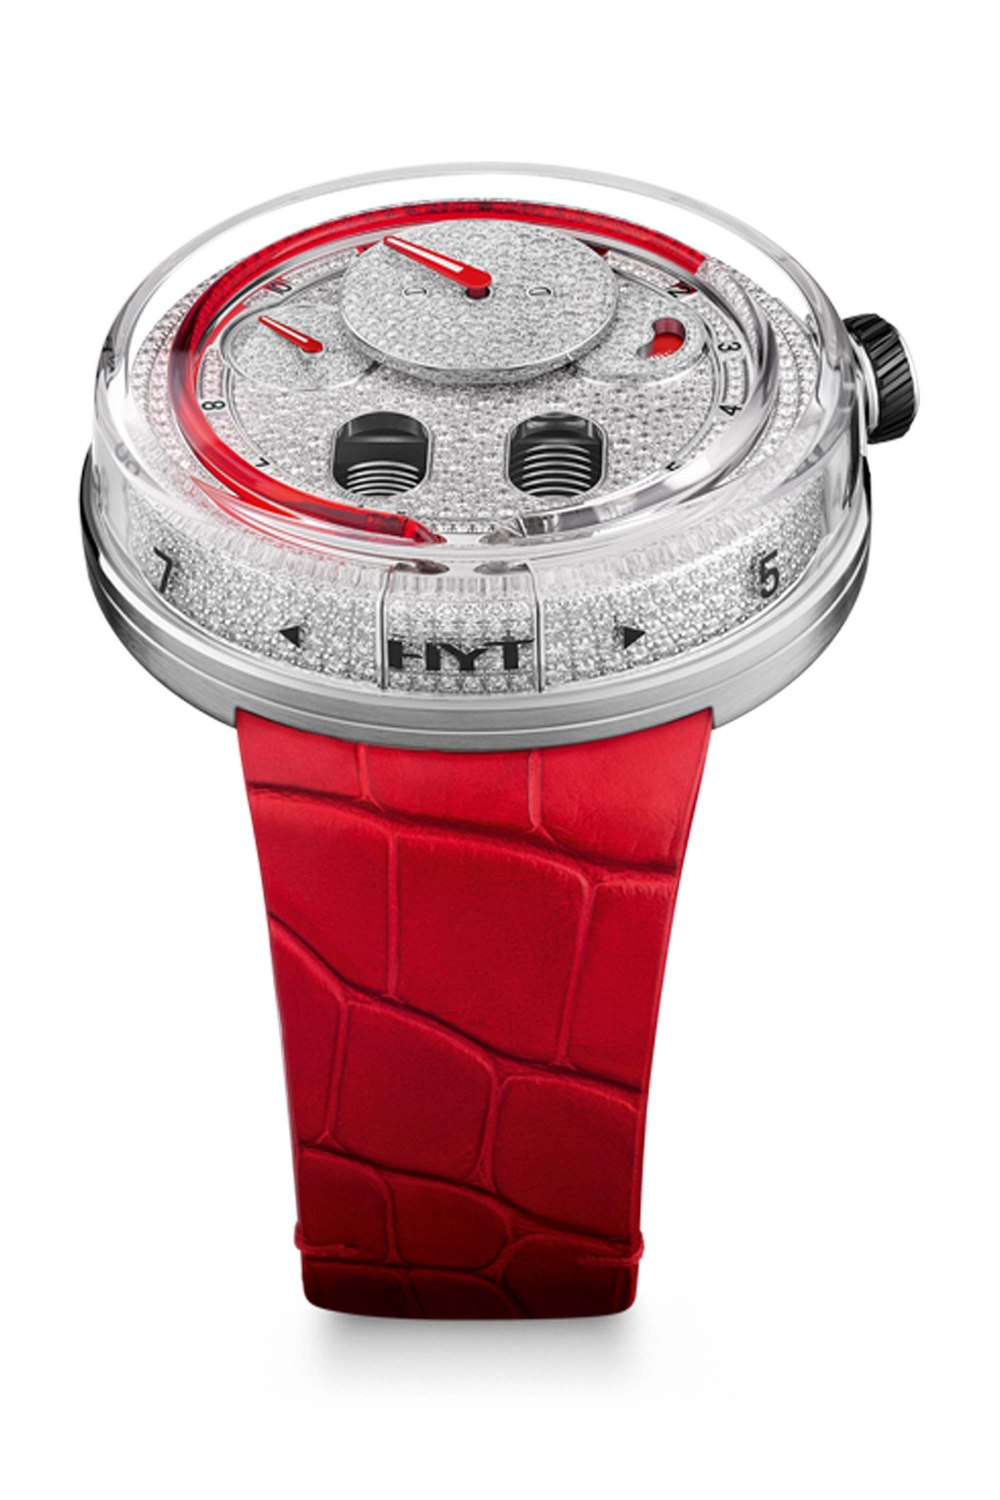 H0 Red with Diamonds